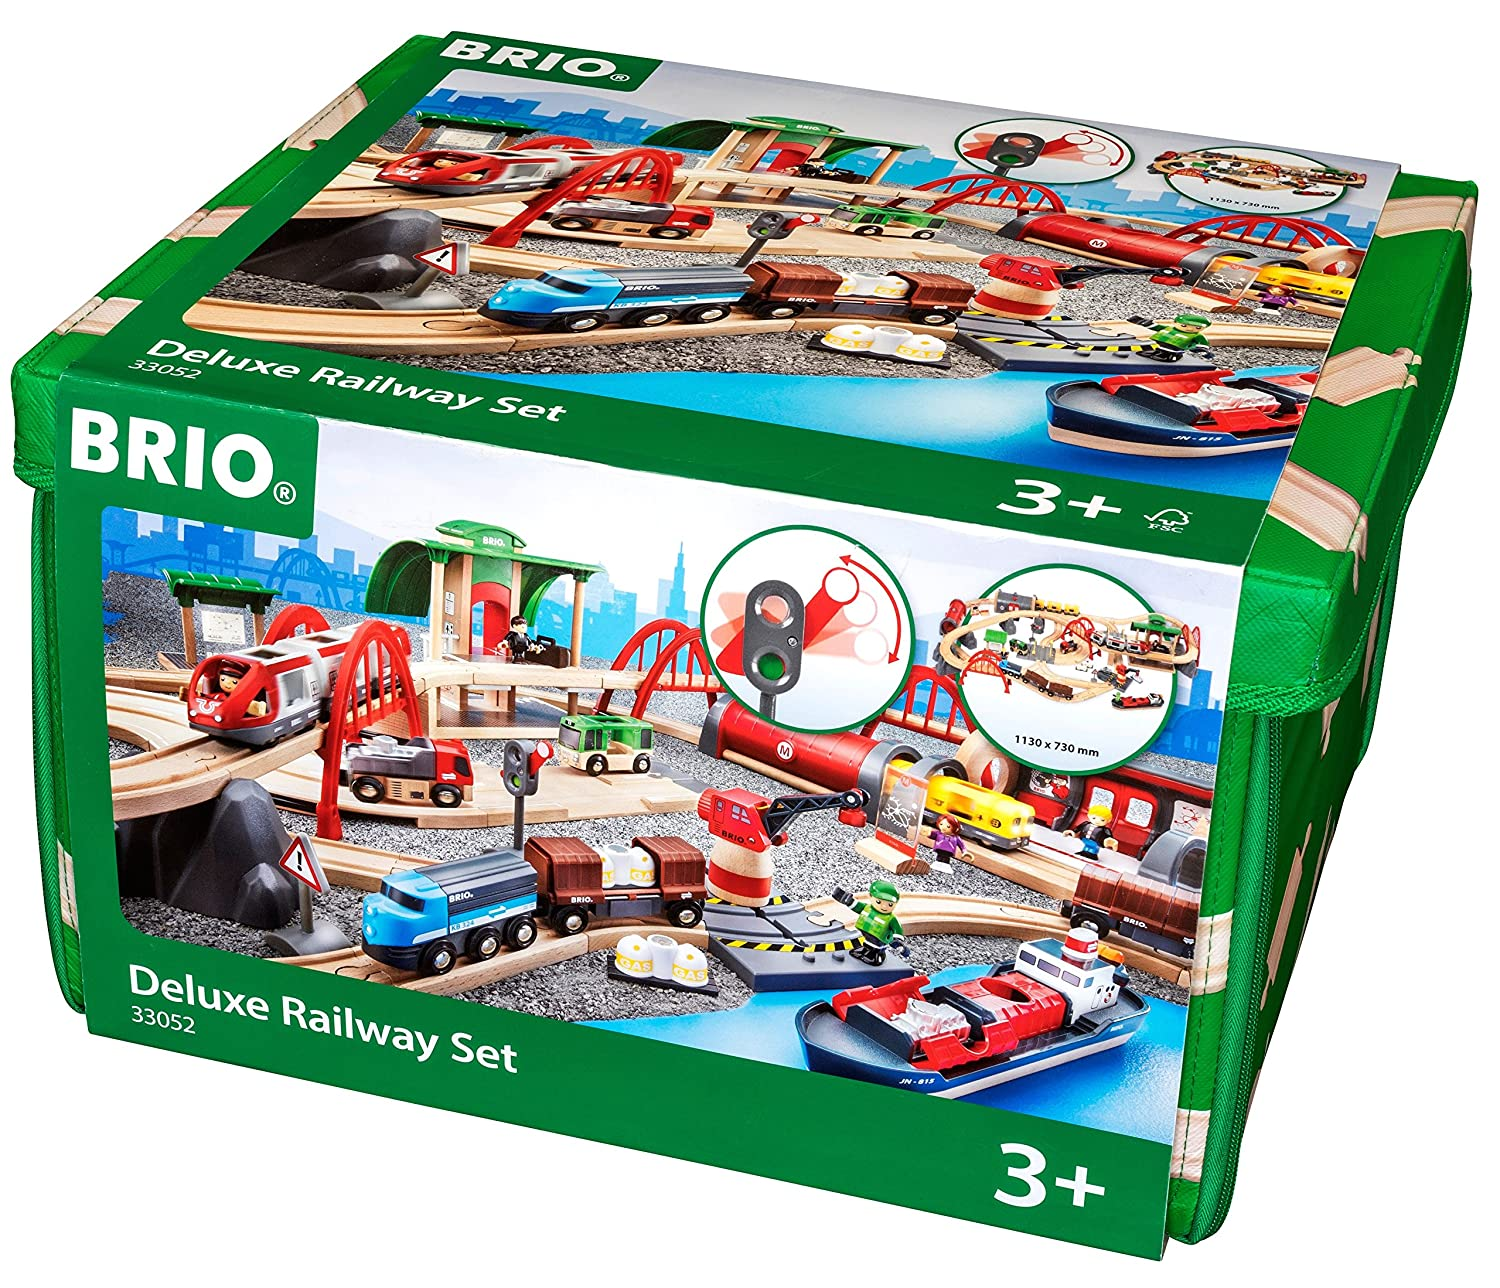 The Best Toy Train Sets for Kids